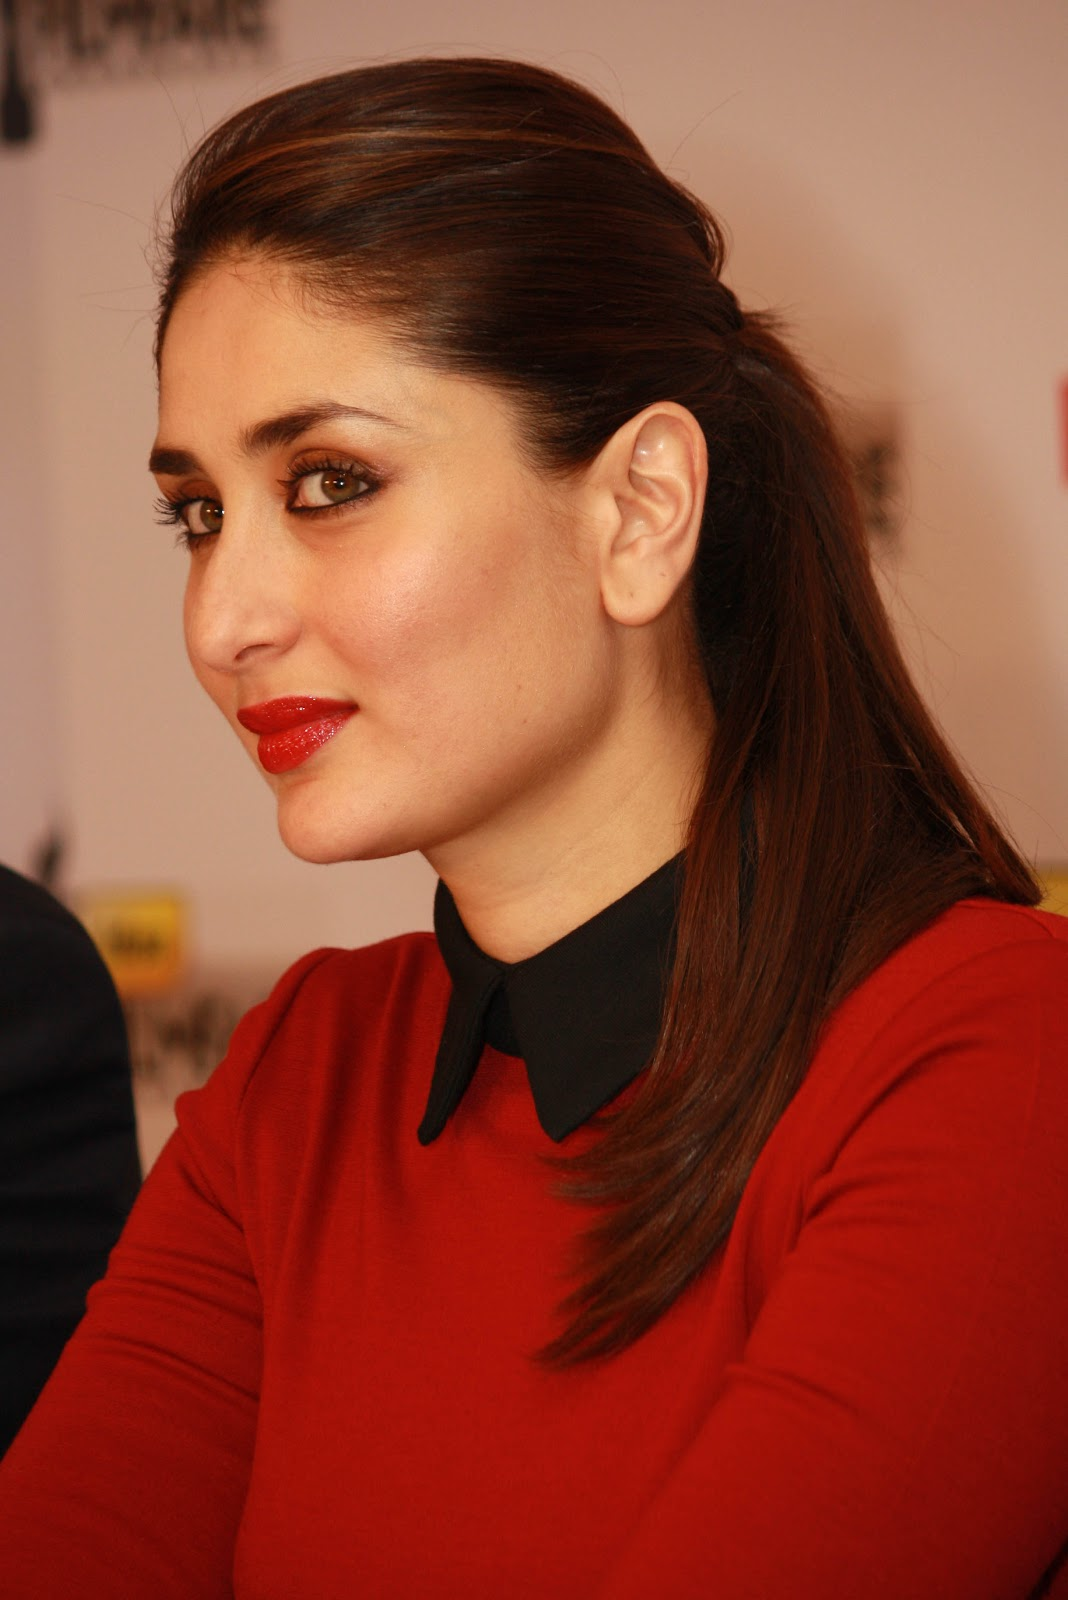 Fantastic HD Photos of Kareena Kapoor Khan in Red Dress at 58th Idea Filmfare Awards